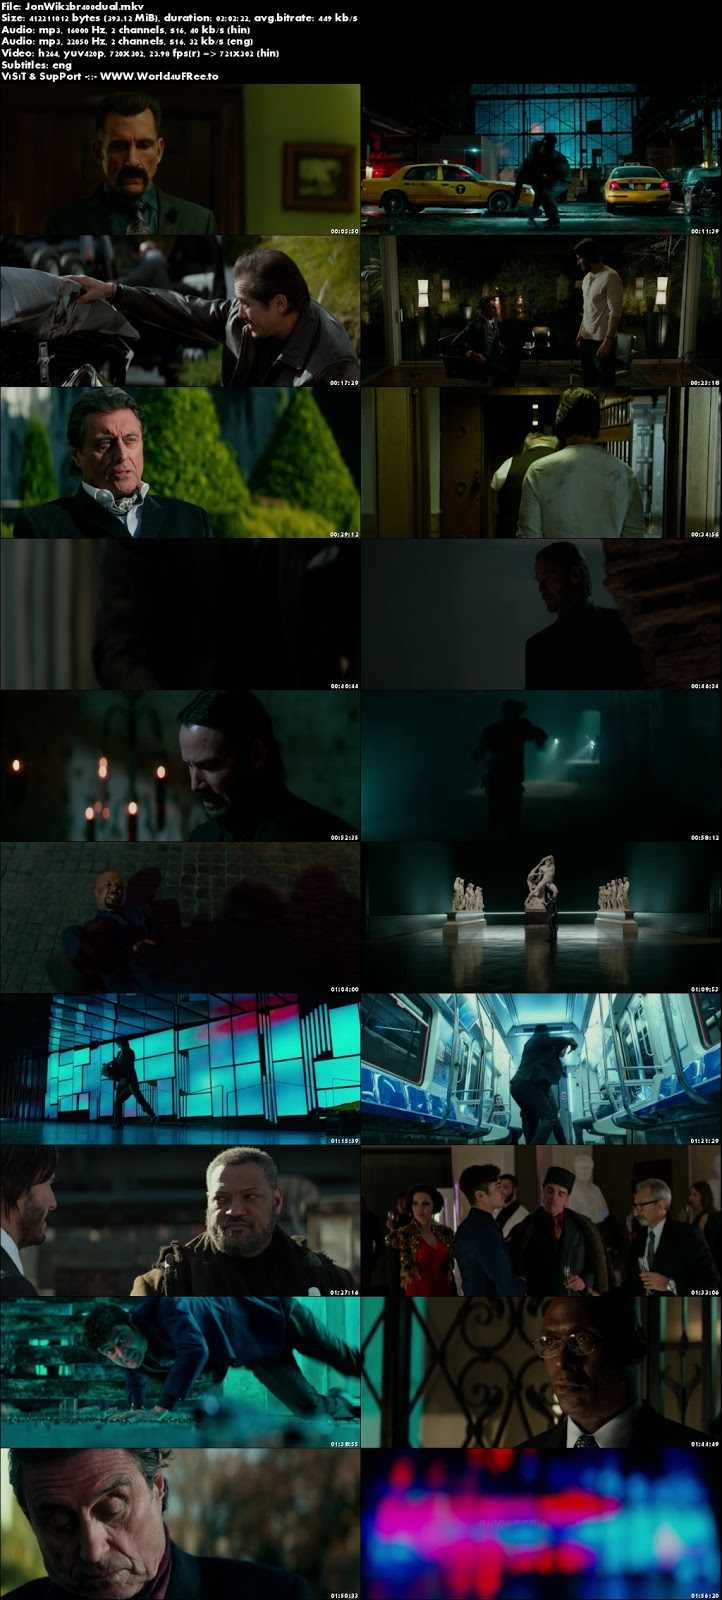 John Wick Chapter 2 2017 Dual Audio BRRip 480p 400Mb x264 world4ufree.to hollywood movie John Wick Chapter 2 2017 hindi dubbed dual audio 480p brrip bluray compressed small size 300mb free download or watch online at world4ufree.to